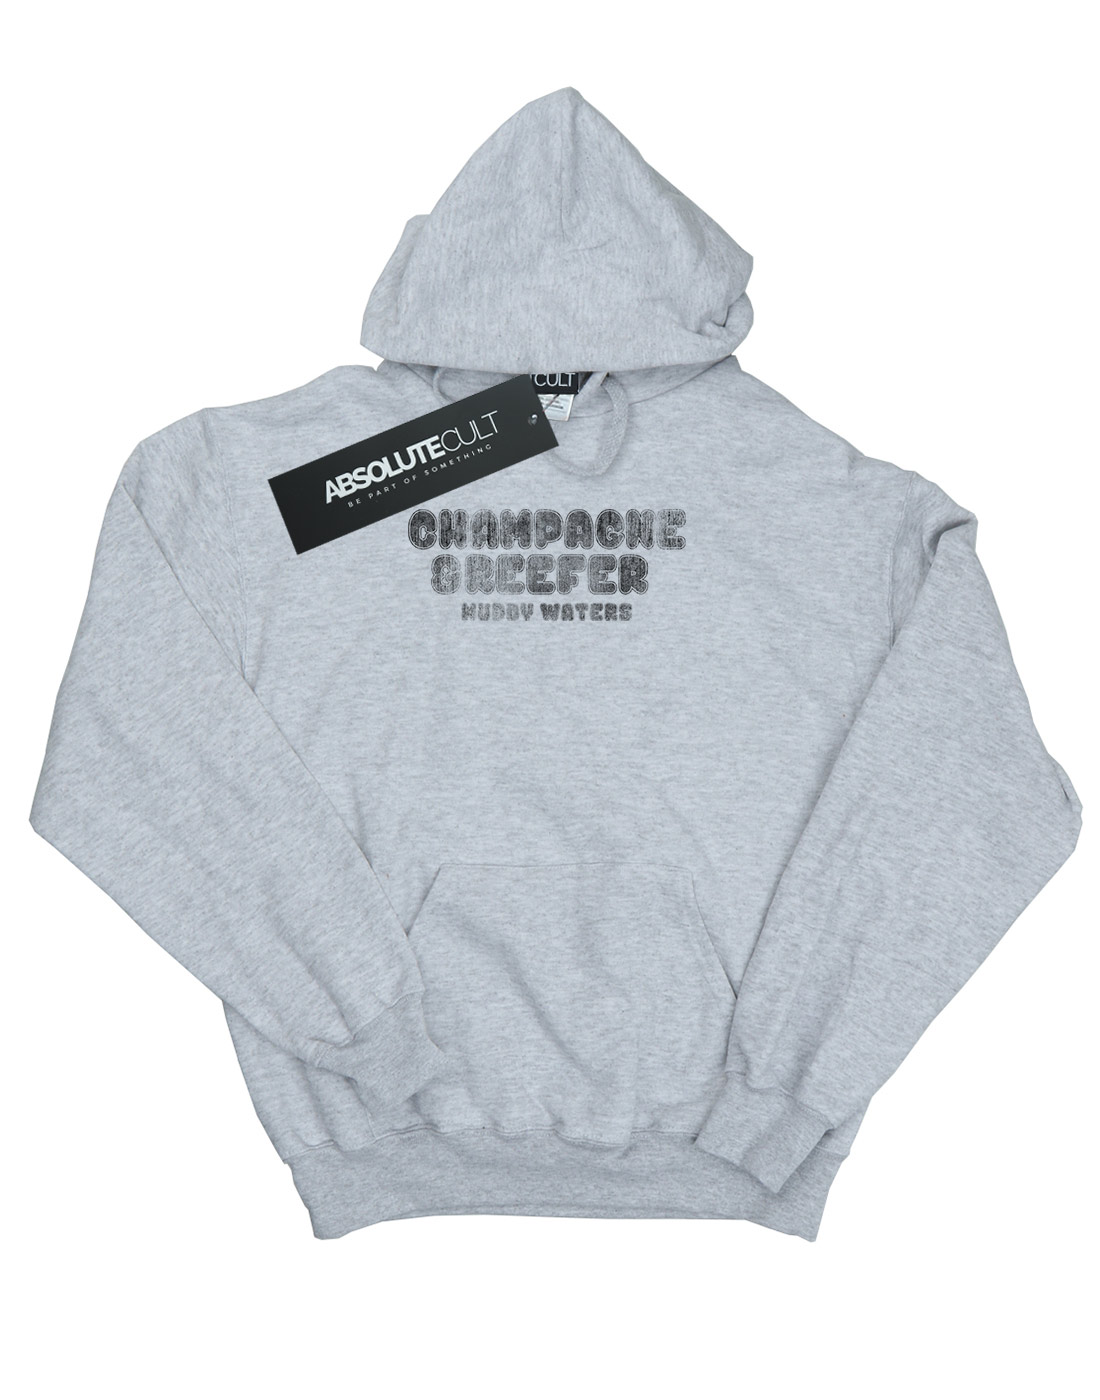 Muddy Muddy Muddy Waters Women's Champagne and Reefer Kaboom Distressed Hoodie cde733